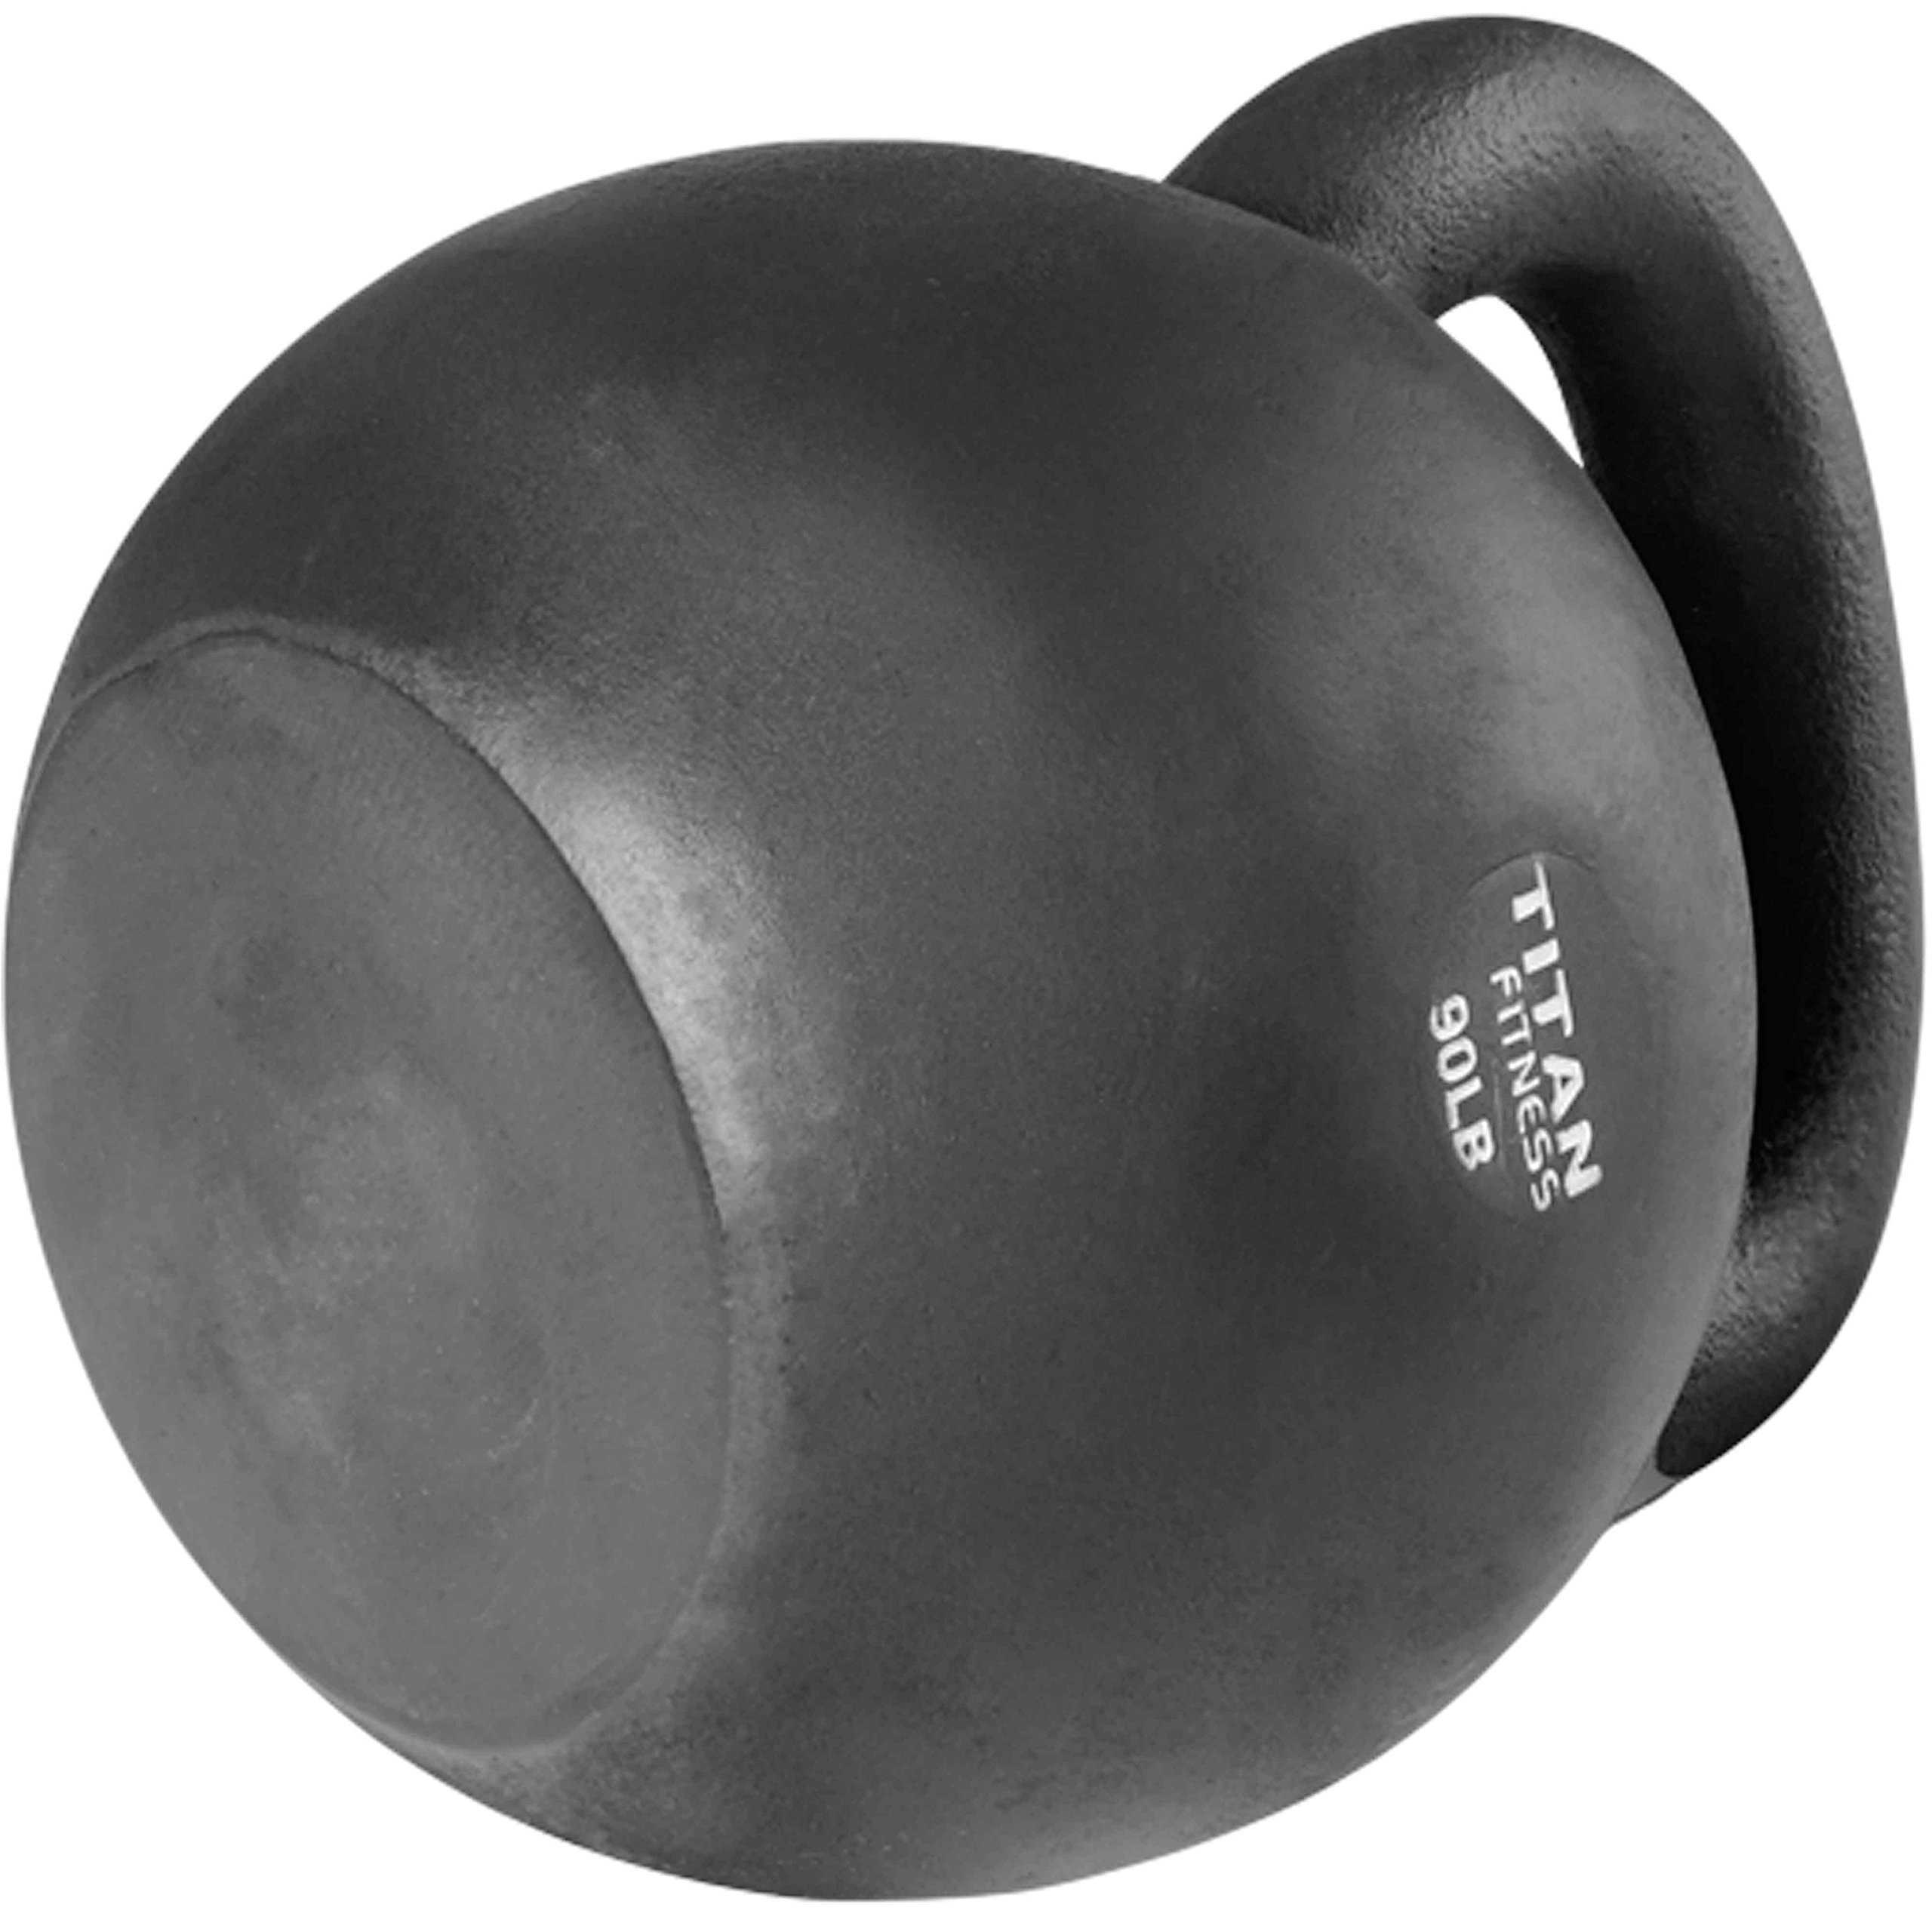 Cast Iron Kettlebell Weight 90 lb Natural Solid Titan Fitness Workout Swing by Titan Fitness (Image #5)